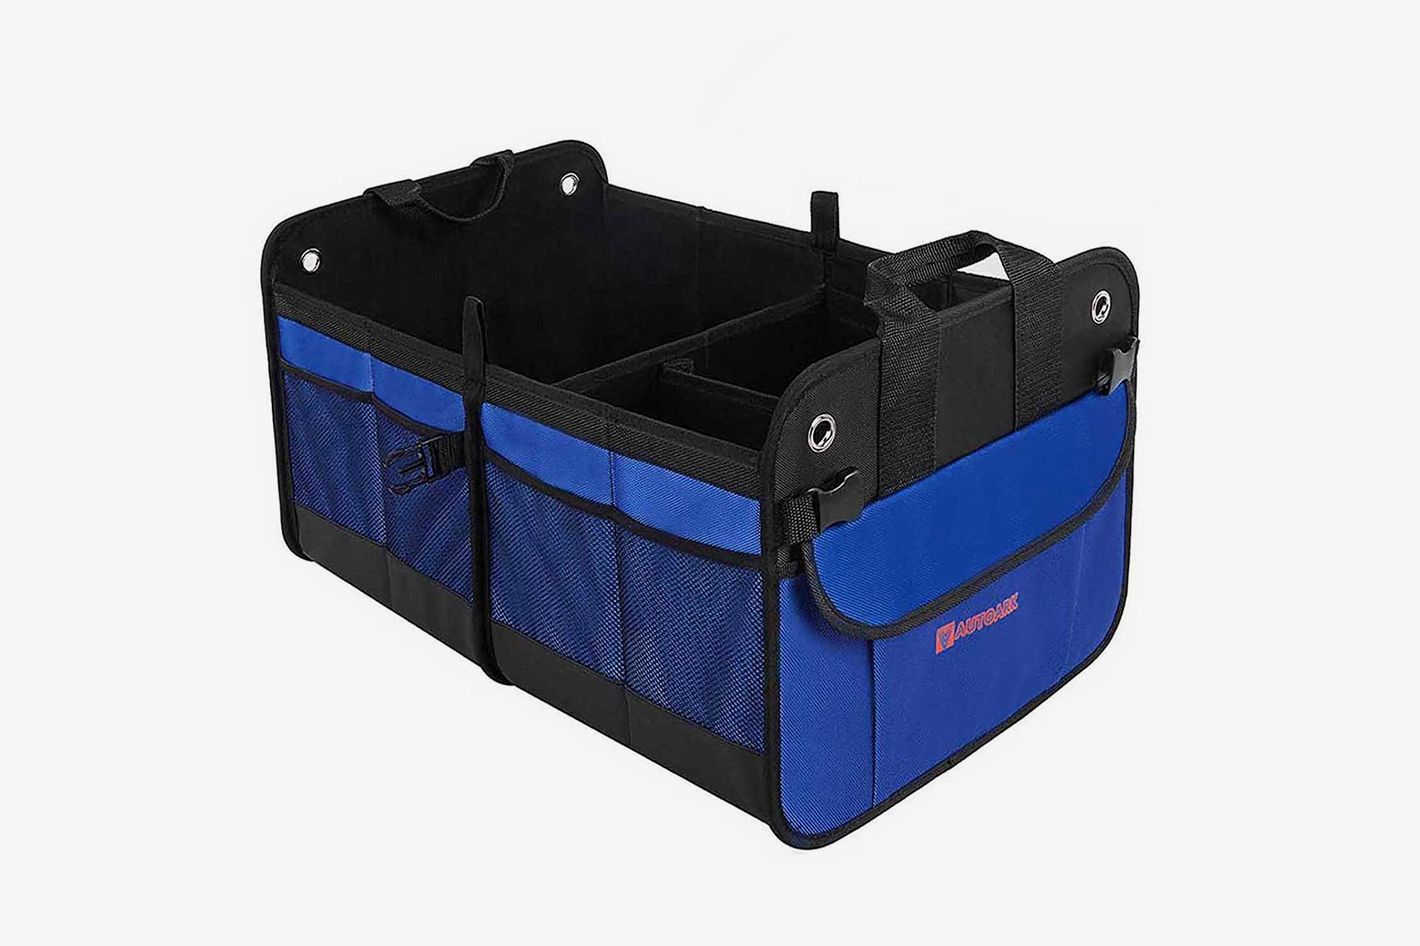 Autoark Multipurpose Car SUV Trunk Organizer, Waterproof Bottom With Velcro Strips to Prevent Sliding